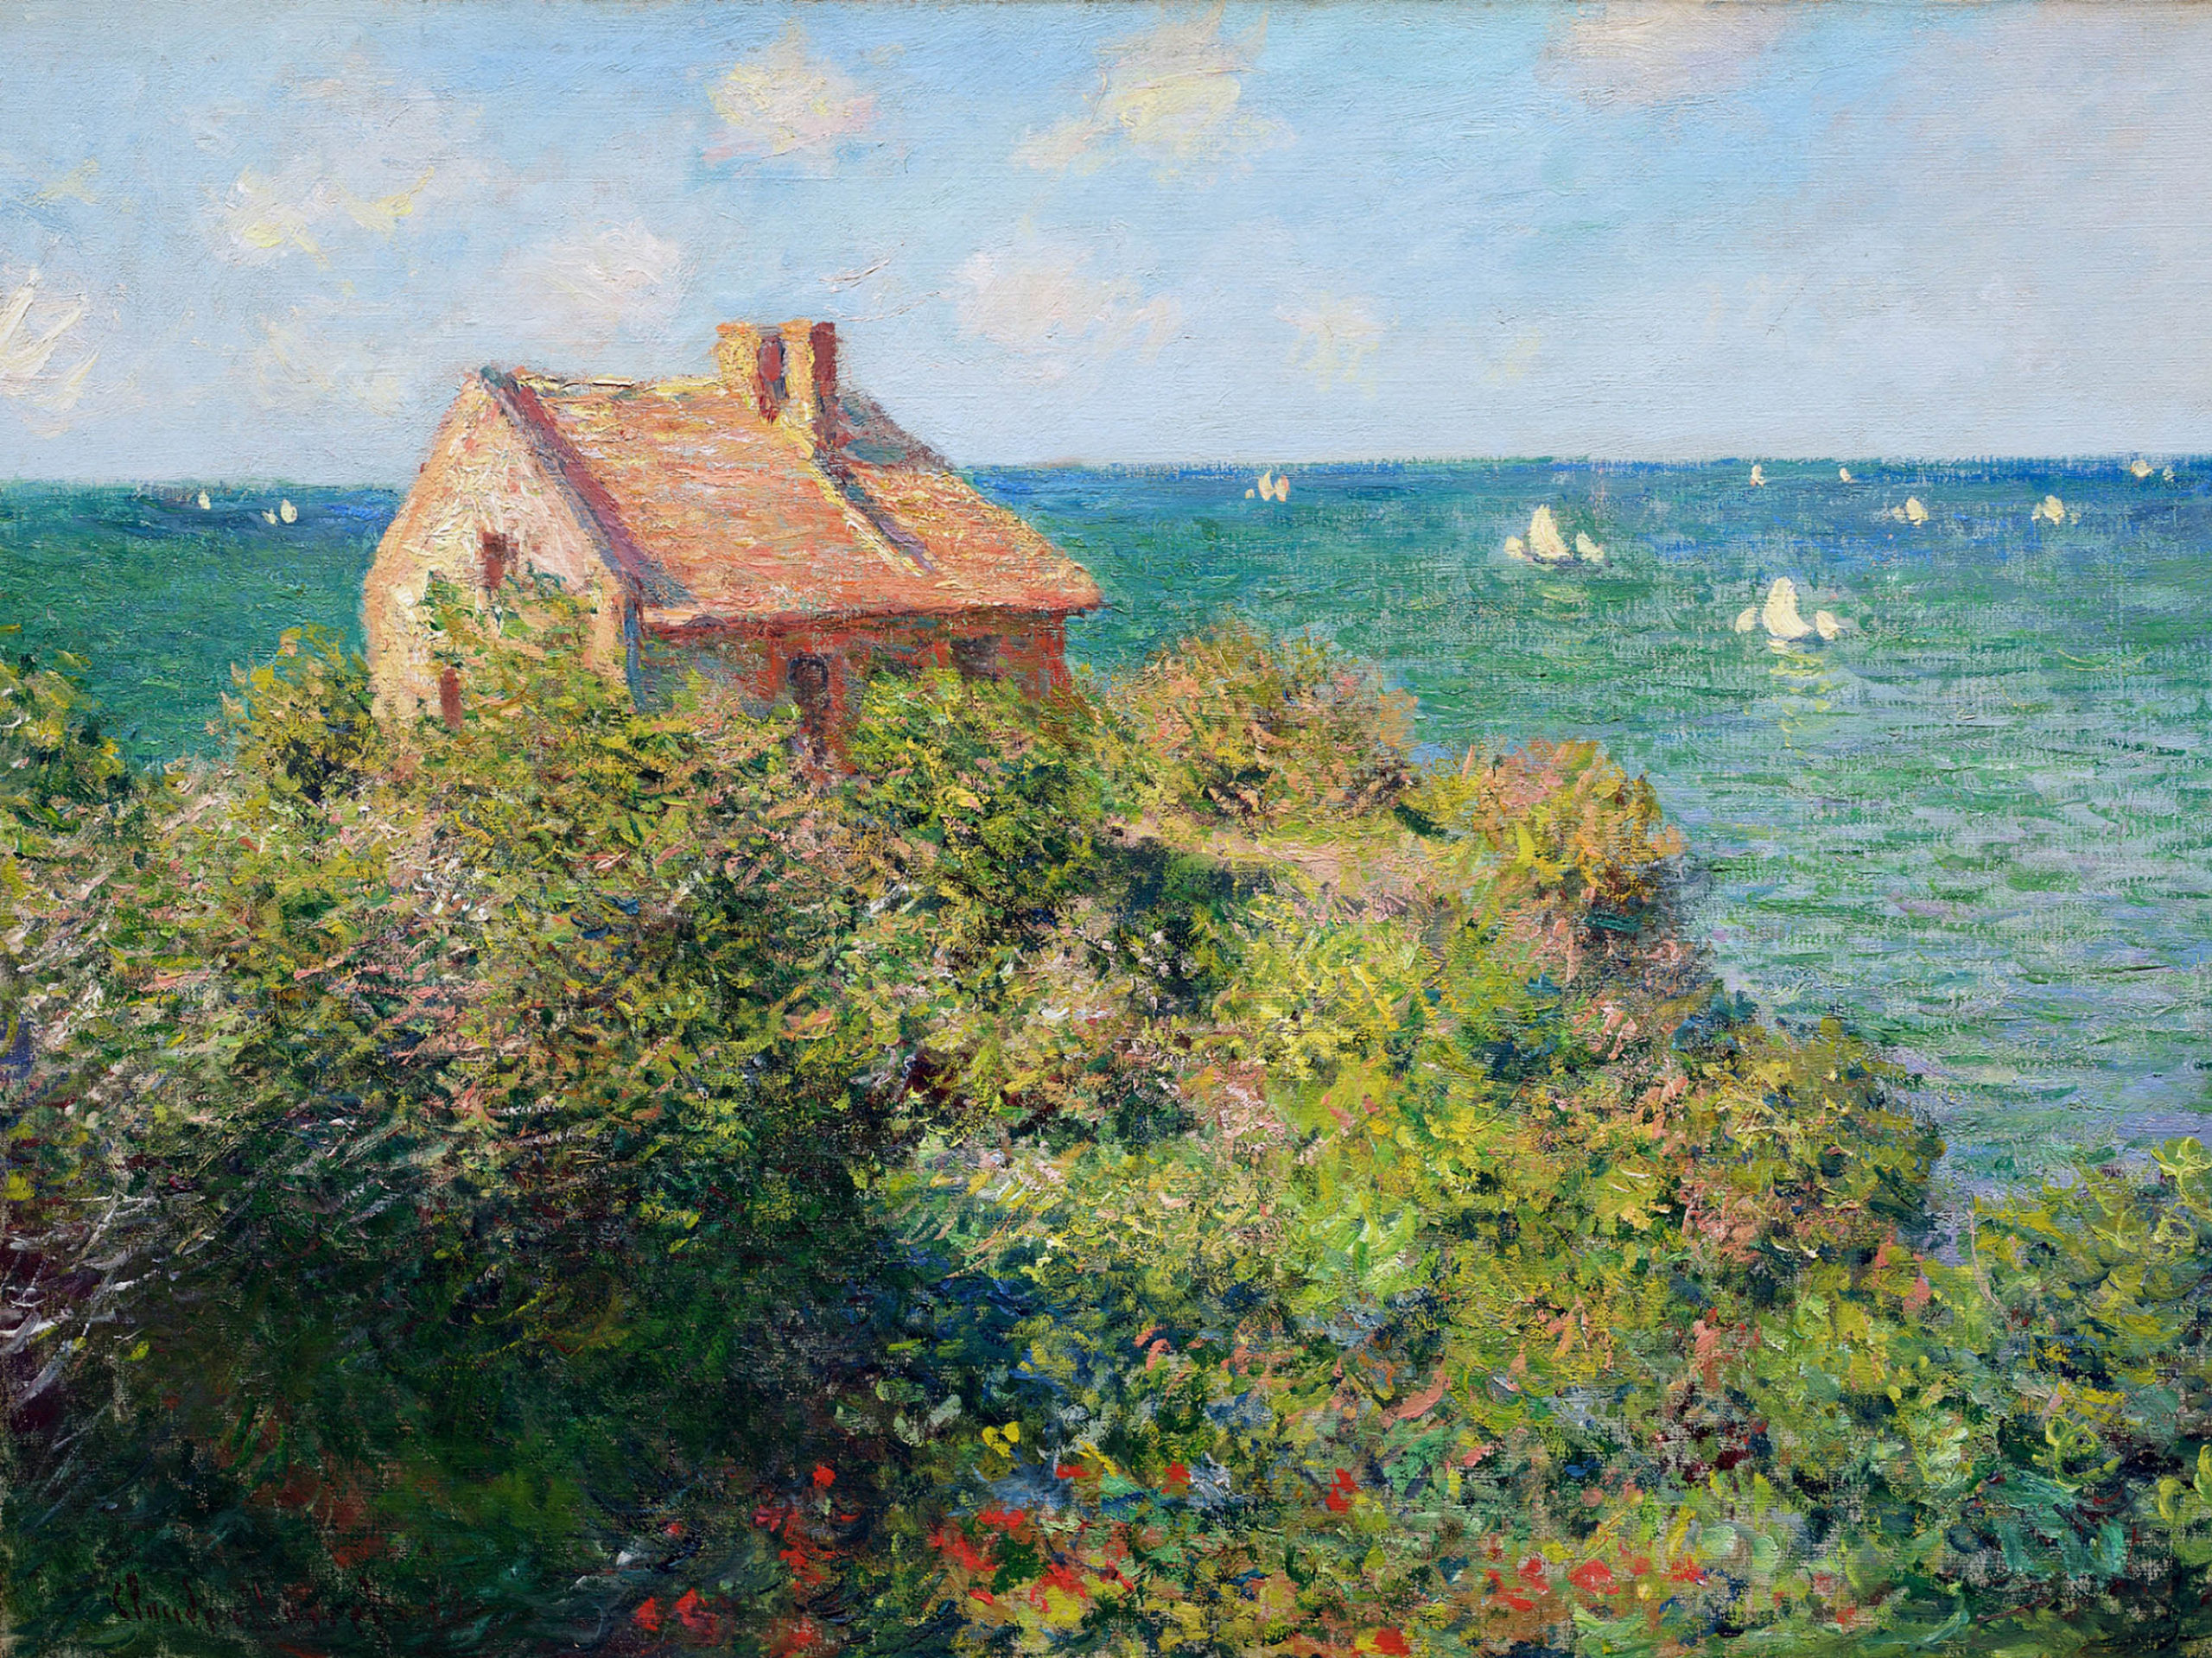 Claude Monet - Fisherman's Cottage at Varengeville 2732x2048